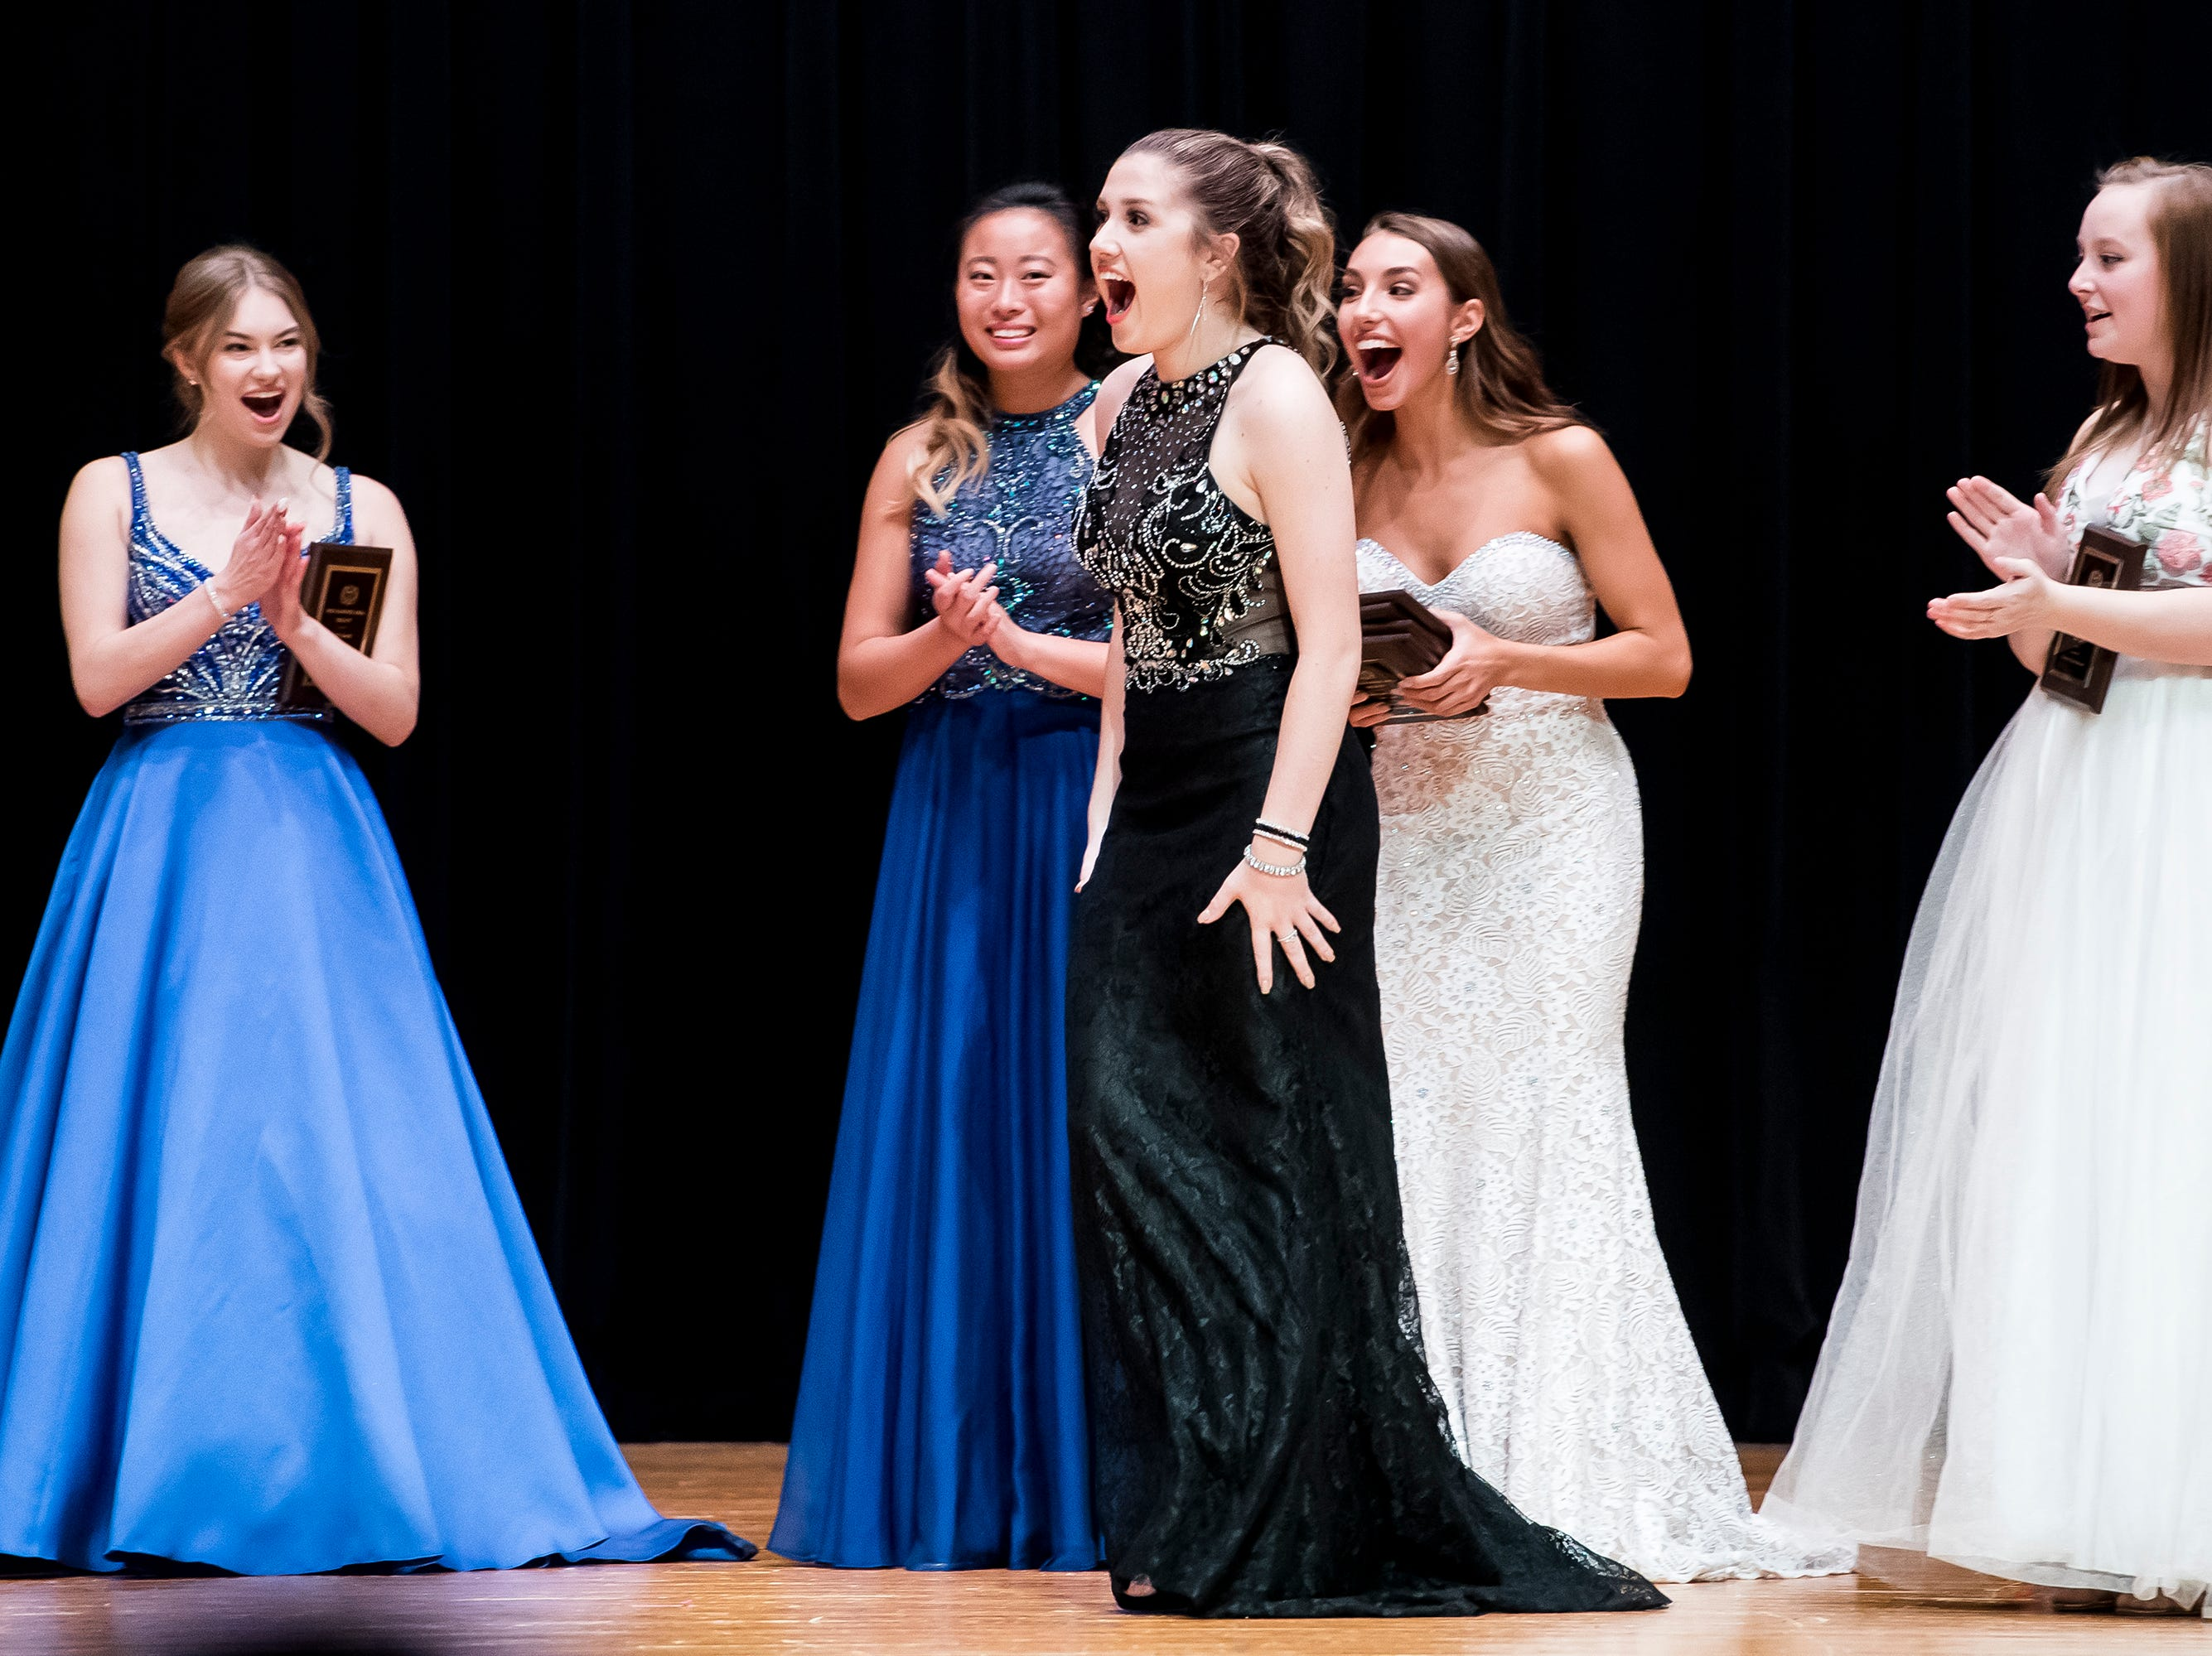 Spring Grove's Hannah Nell reacts after being named the the first runner-up at the 50th Miss Hanover Area on Monday, October 22, 2018.